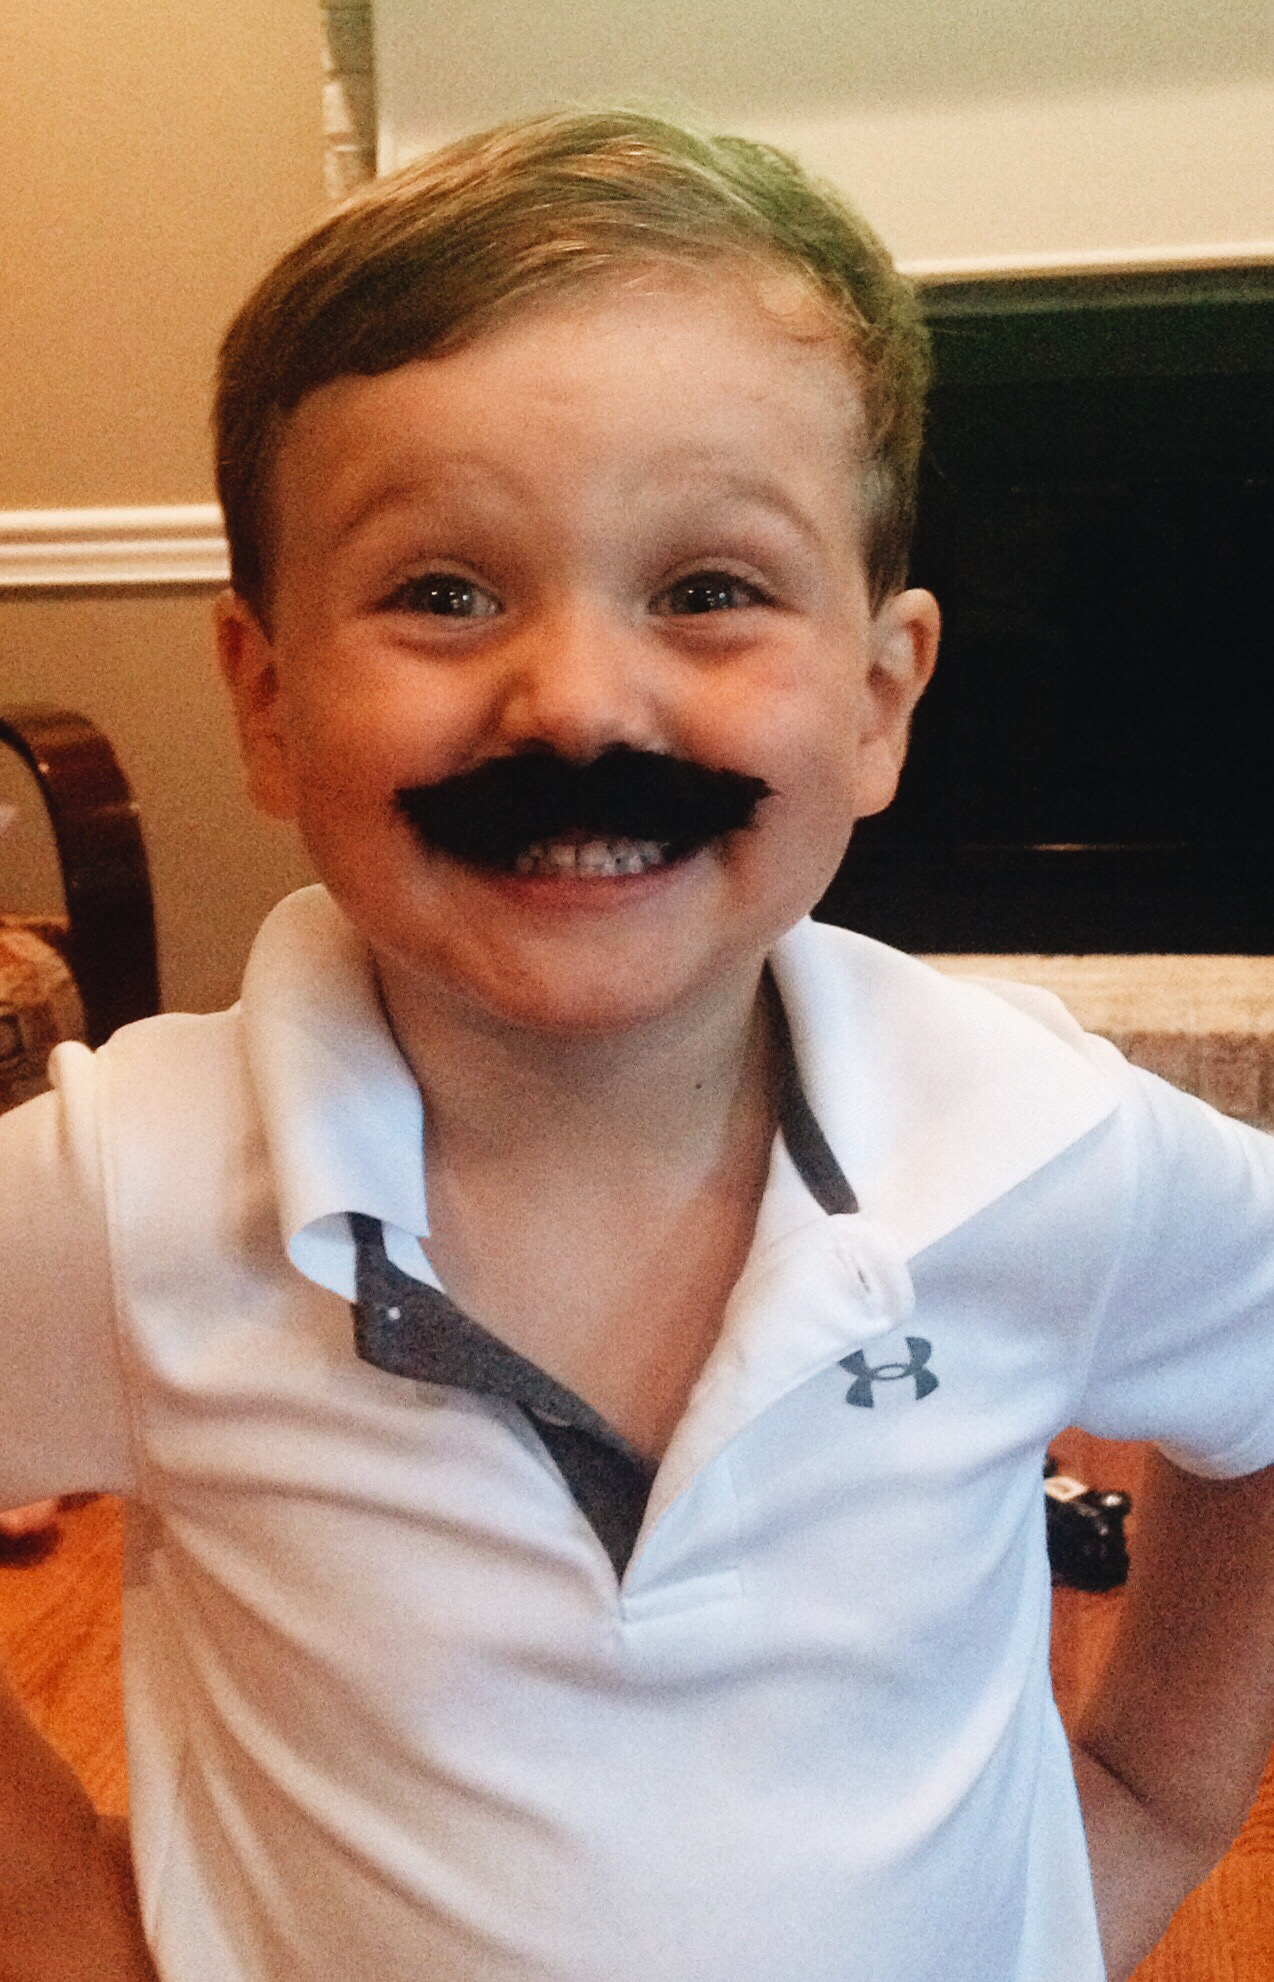 Child Smiling with Mustache